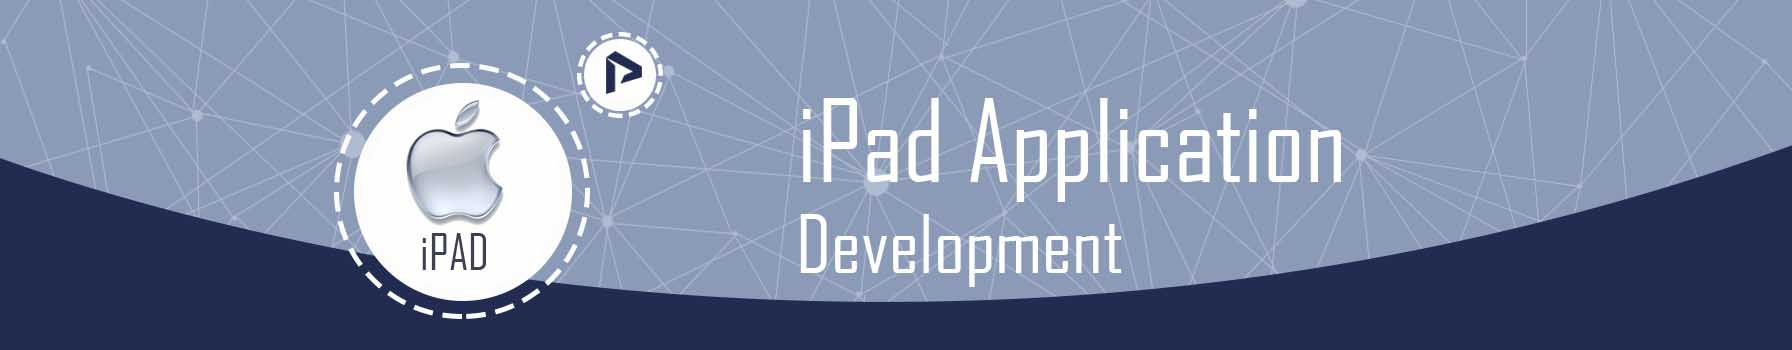 ipad-application-development.jpg